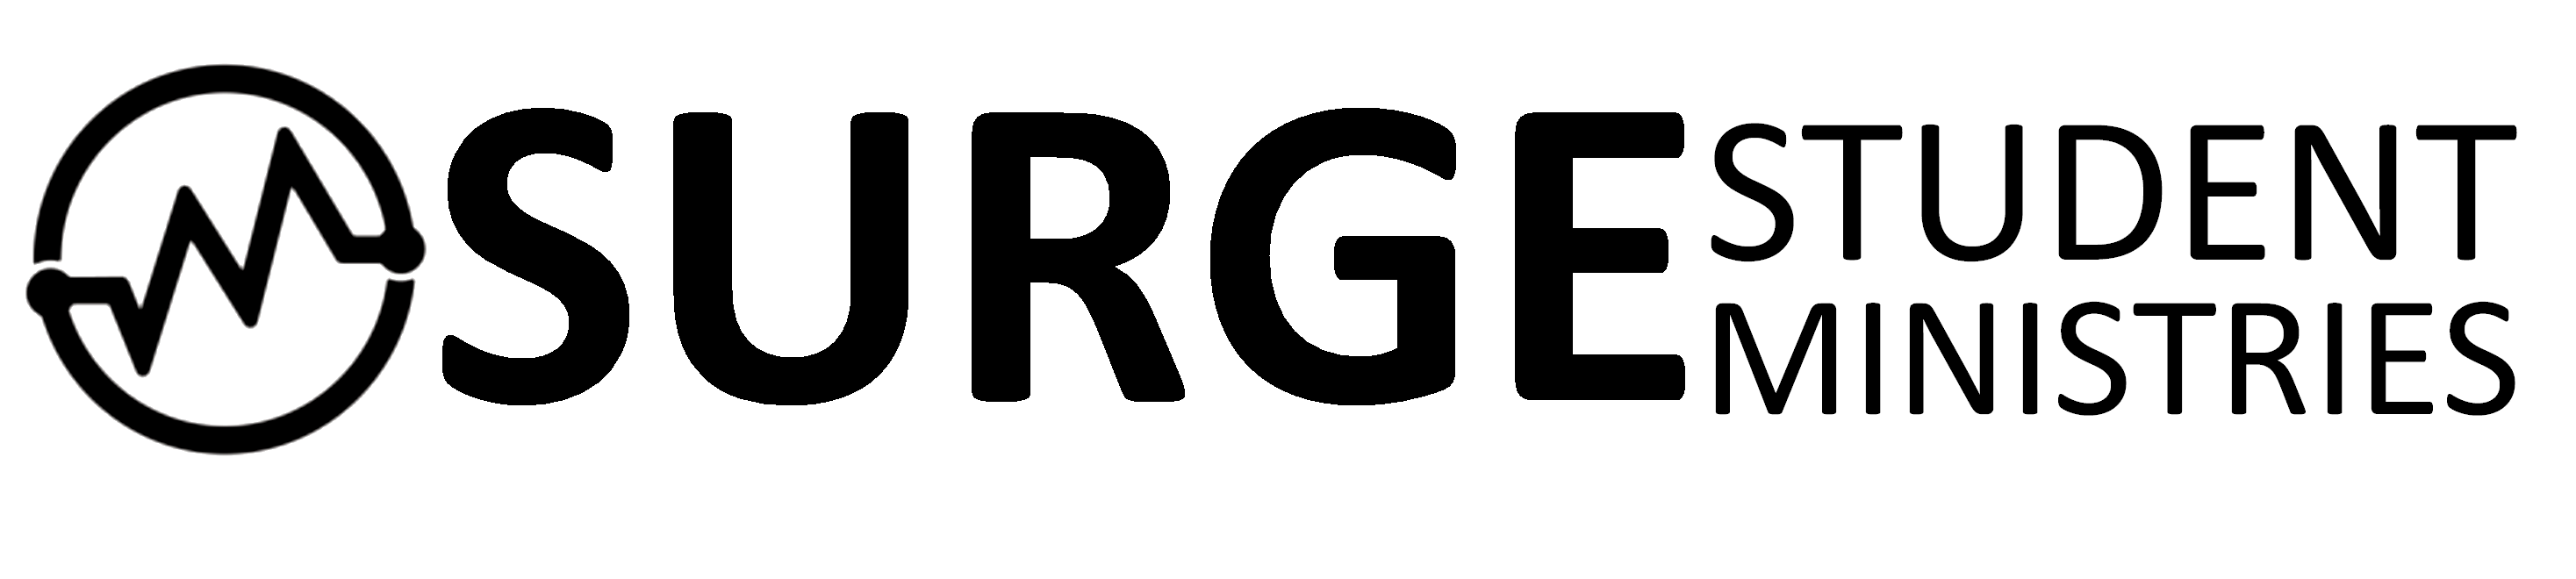 SURGE Logo Black on Transp